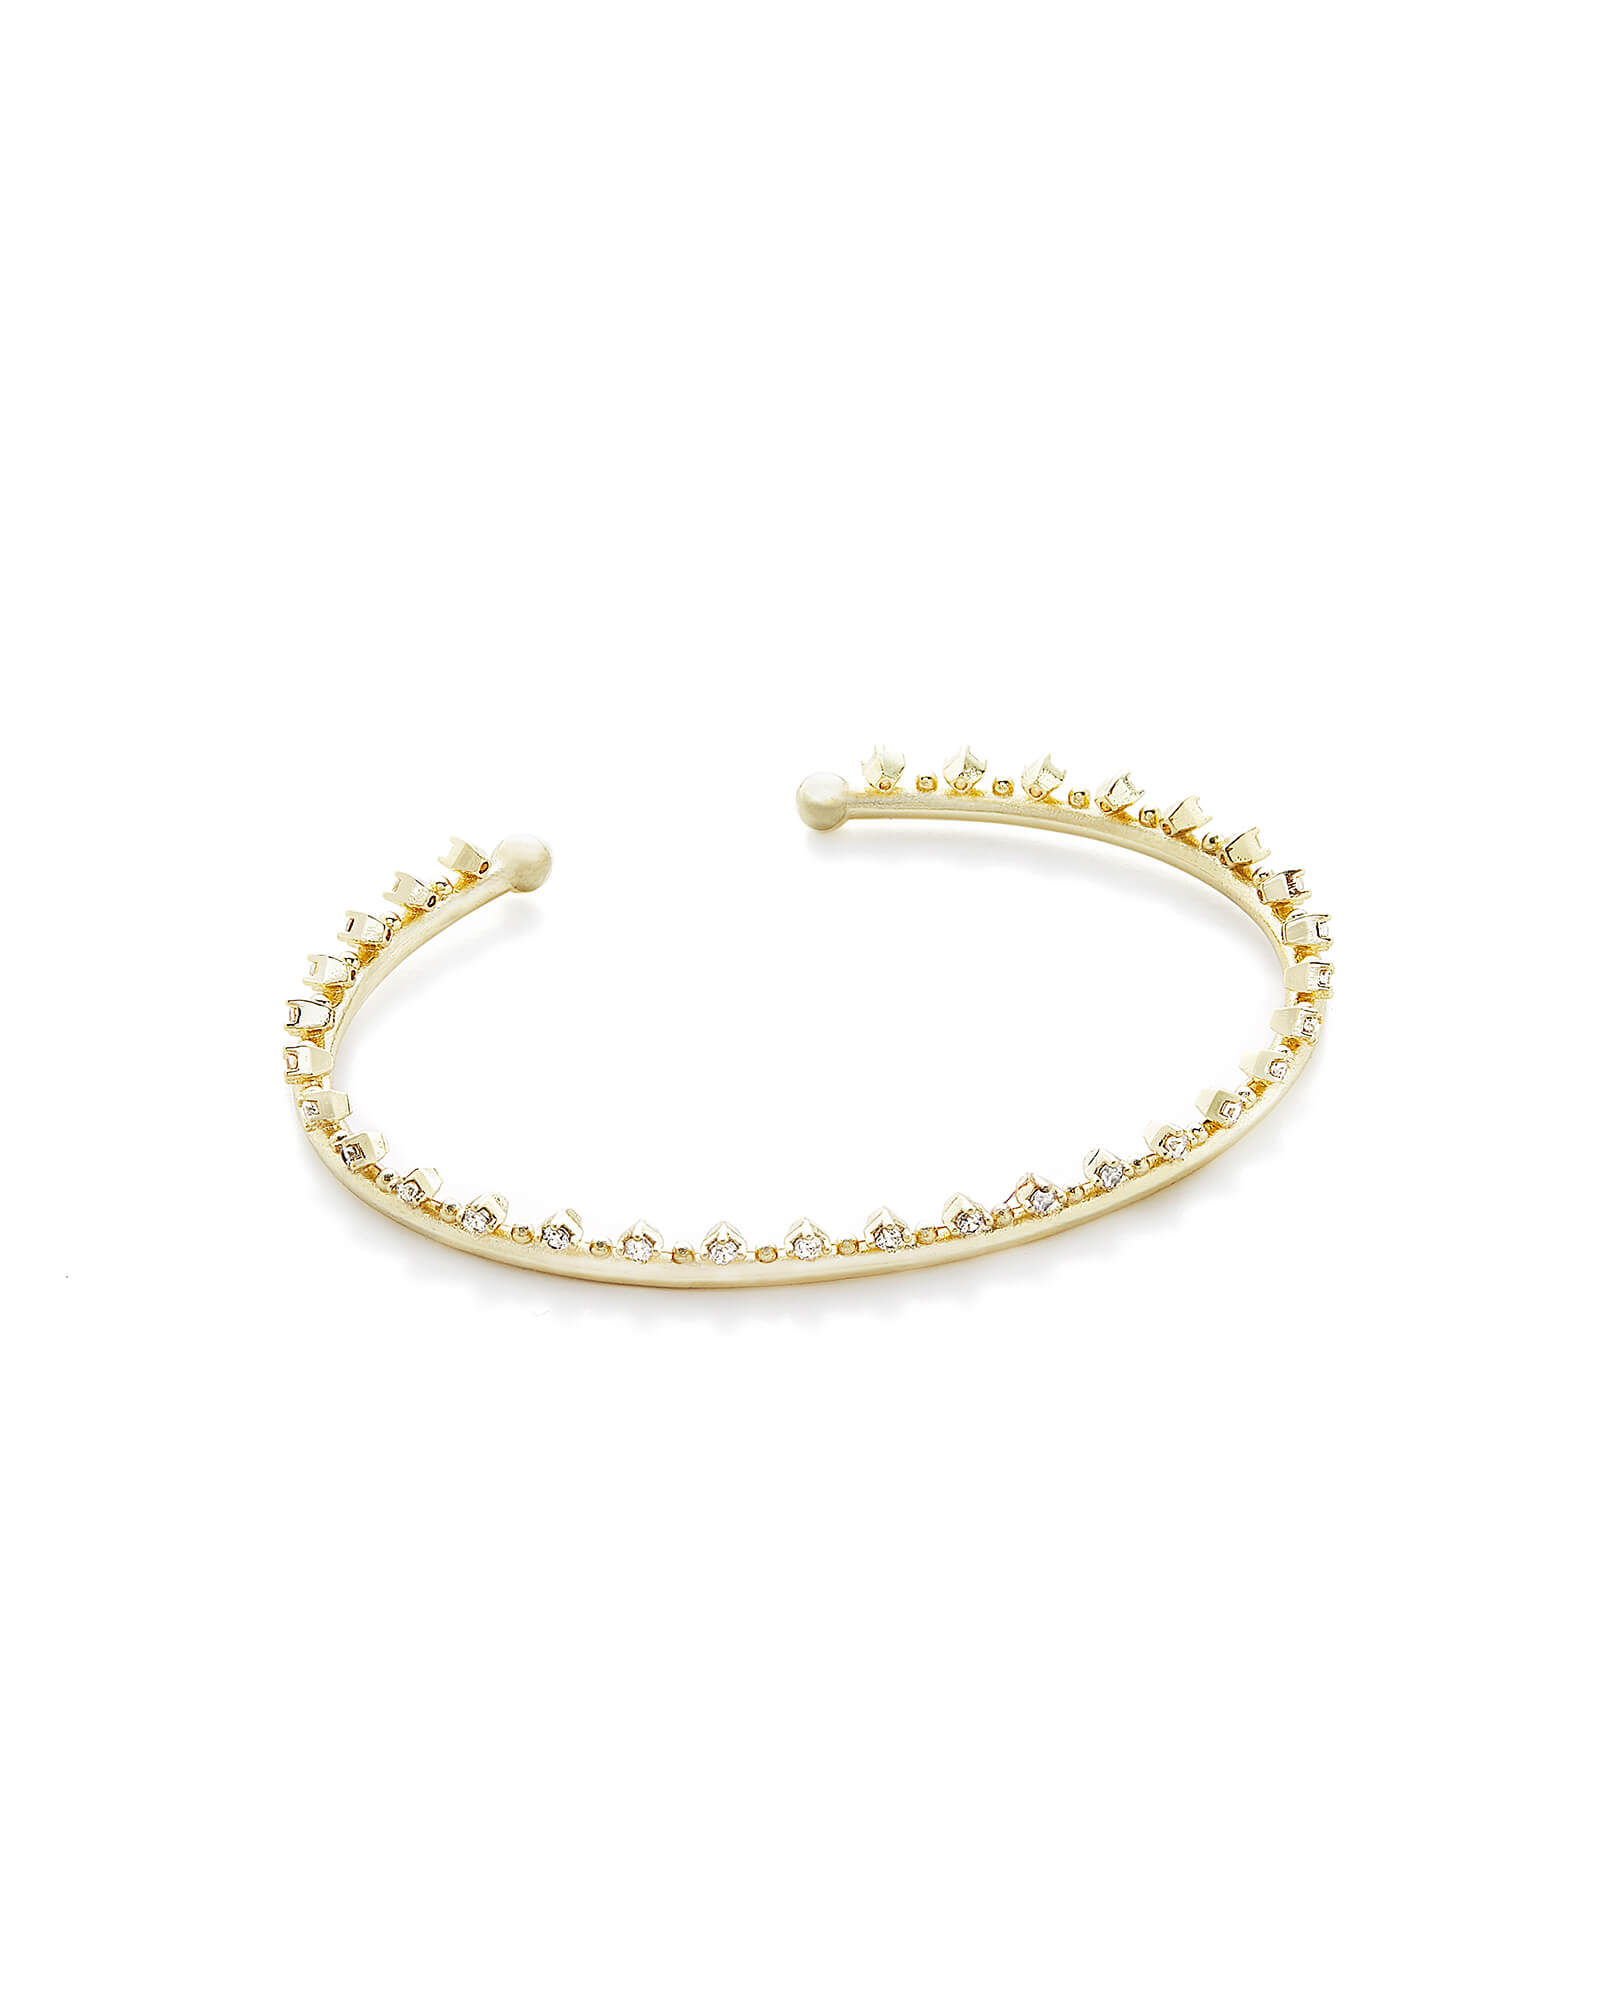 Codi Pinch Bracelet in Gold